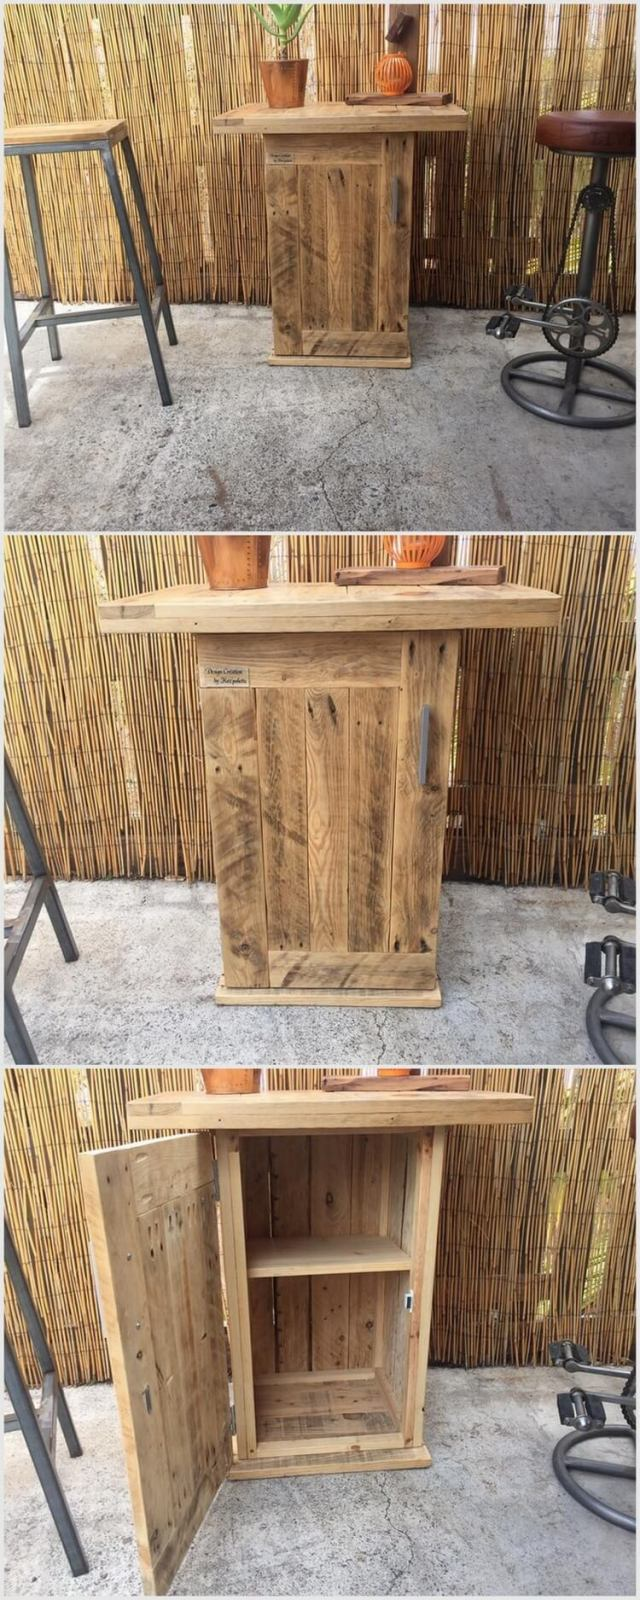 Mini Pallet Bar Table with Cabinet